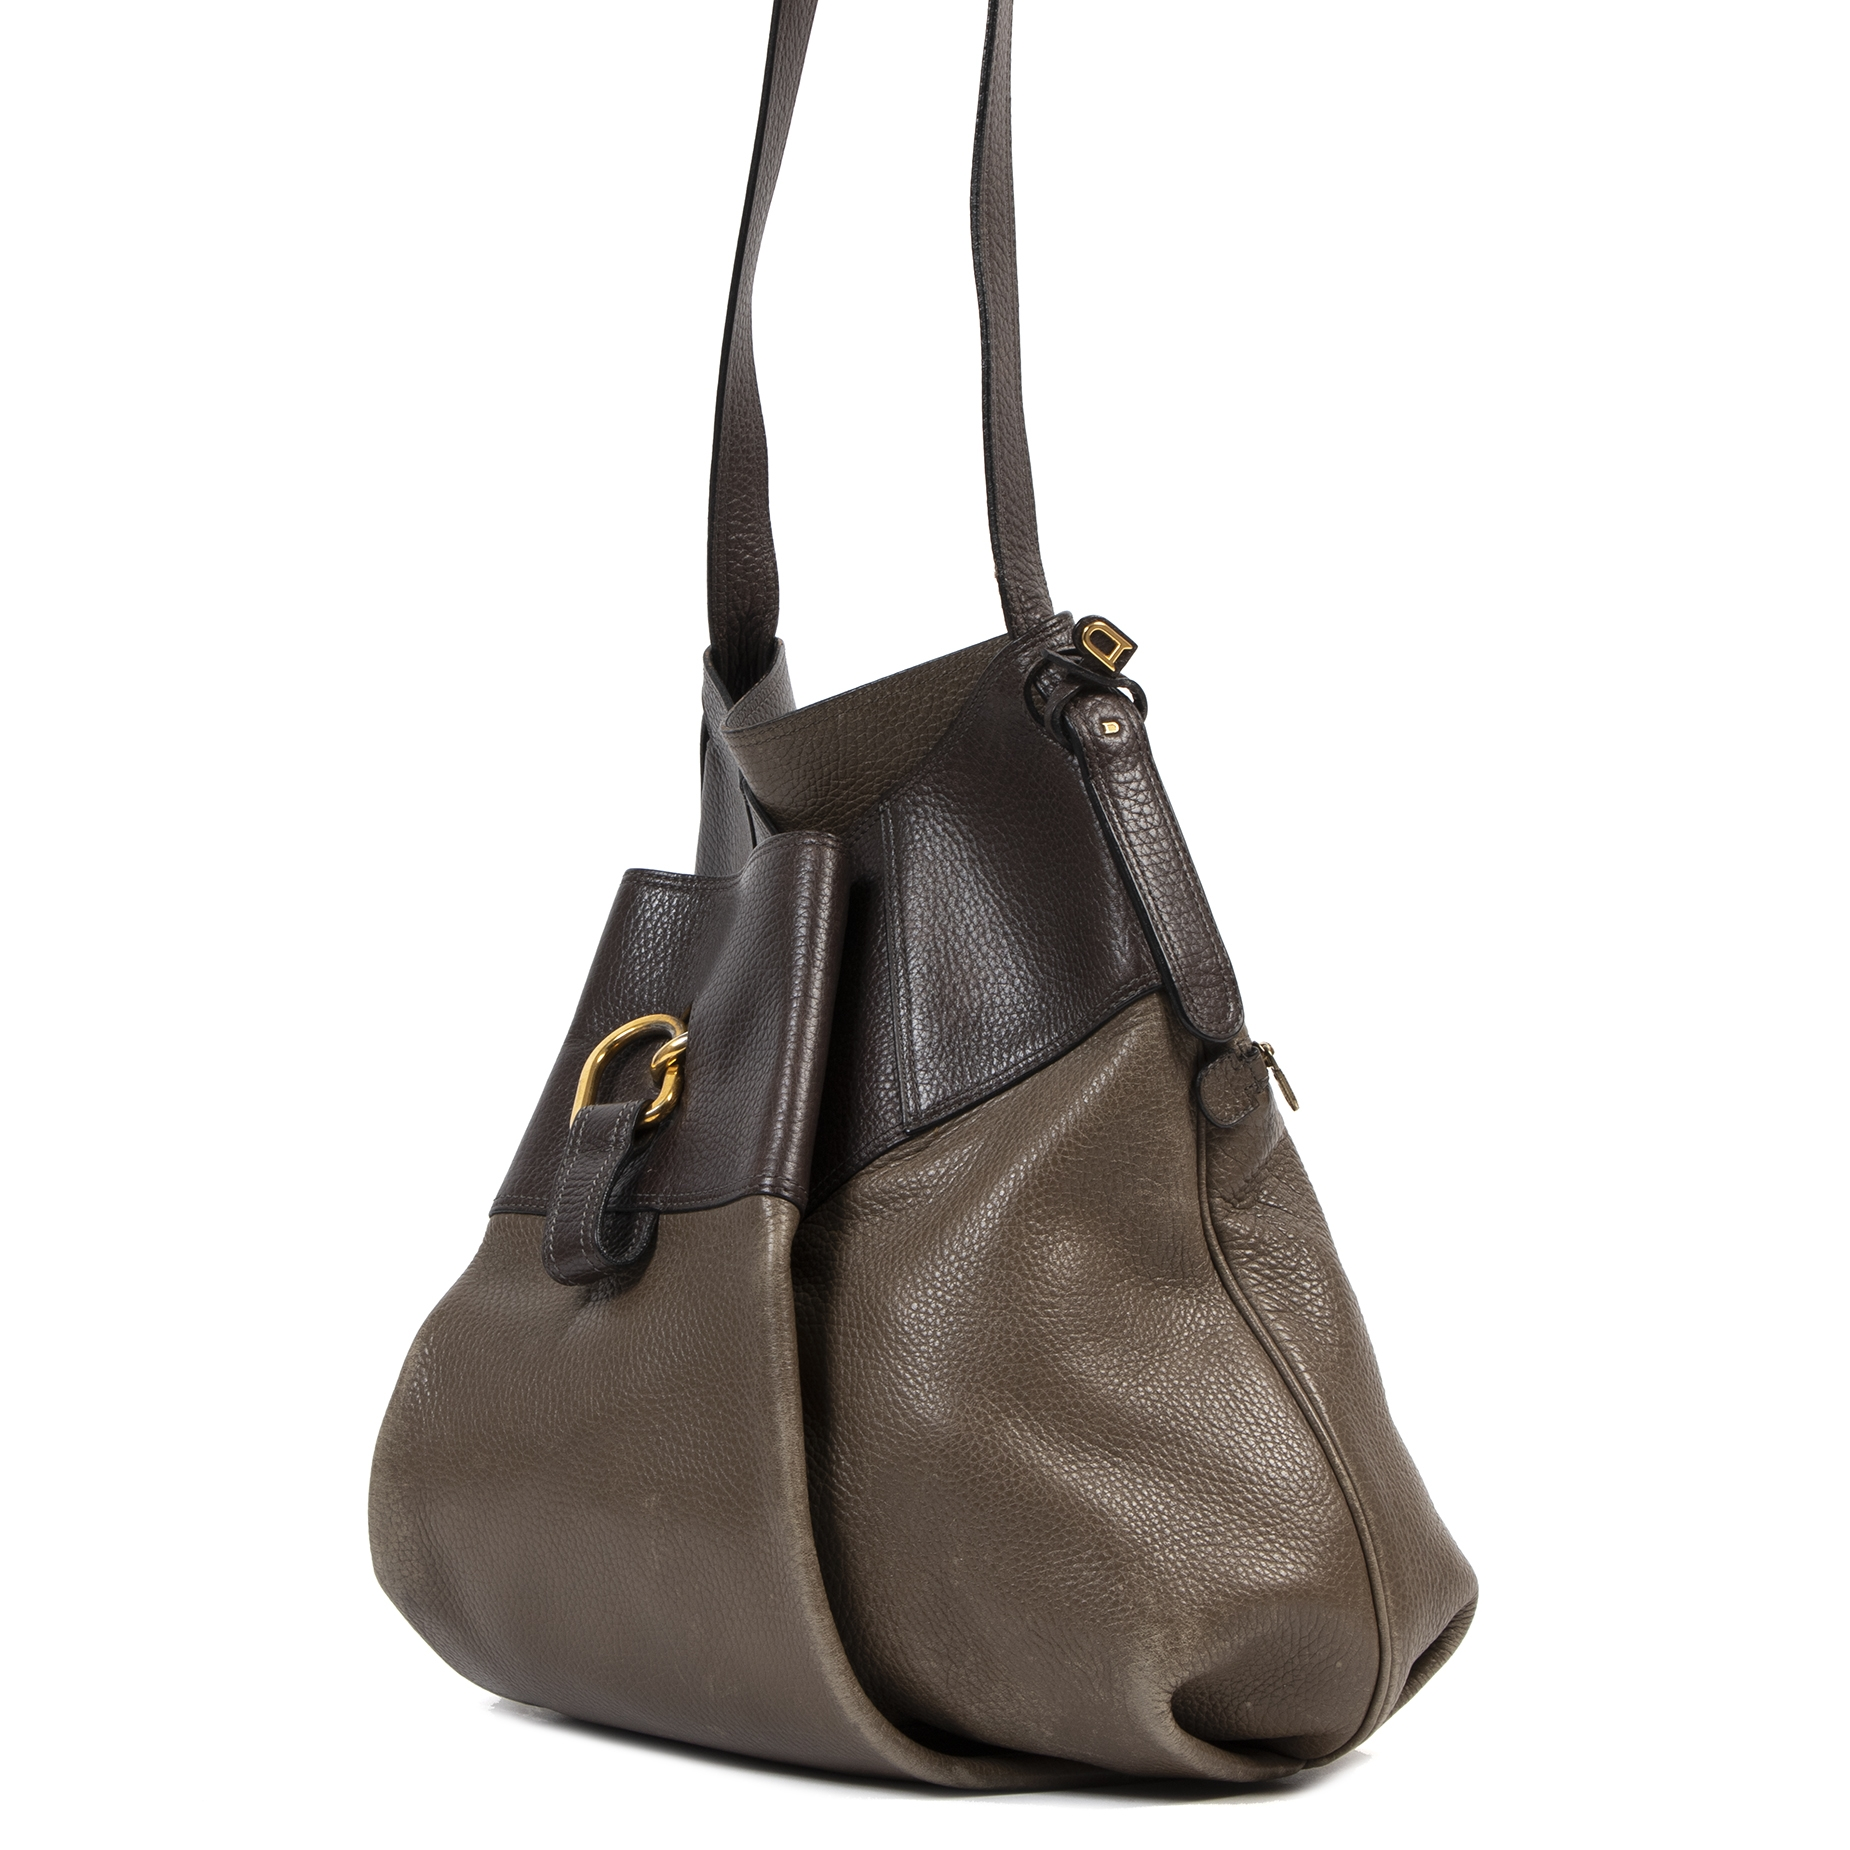 We buy and sell your authentic Delvaux Two Tone Faust Bag